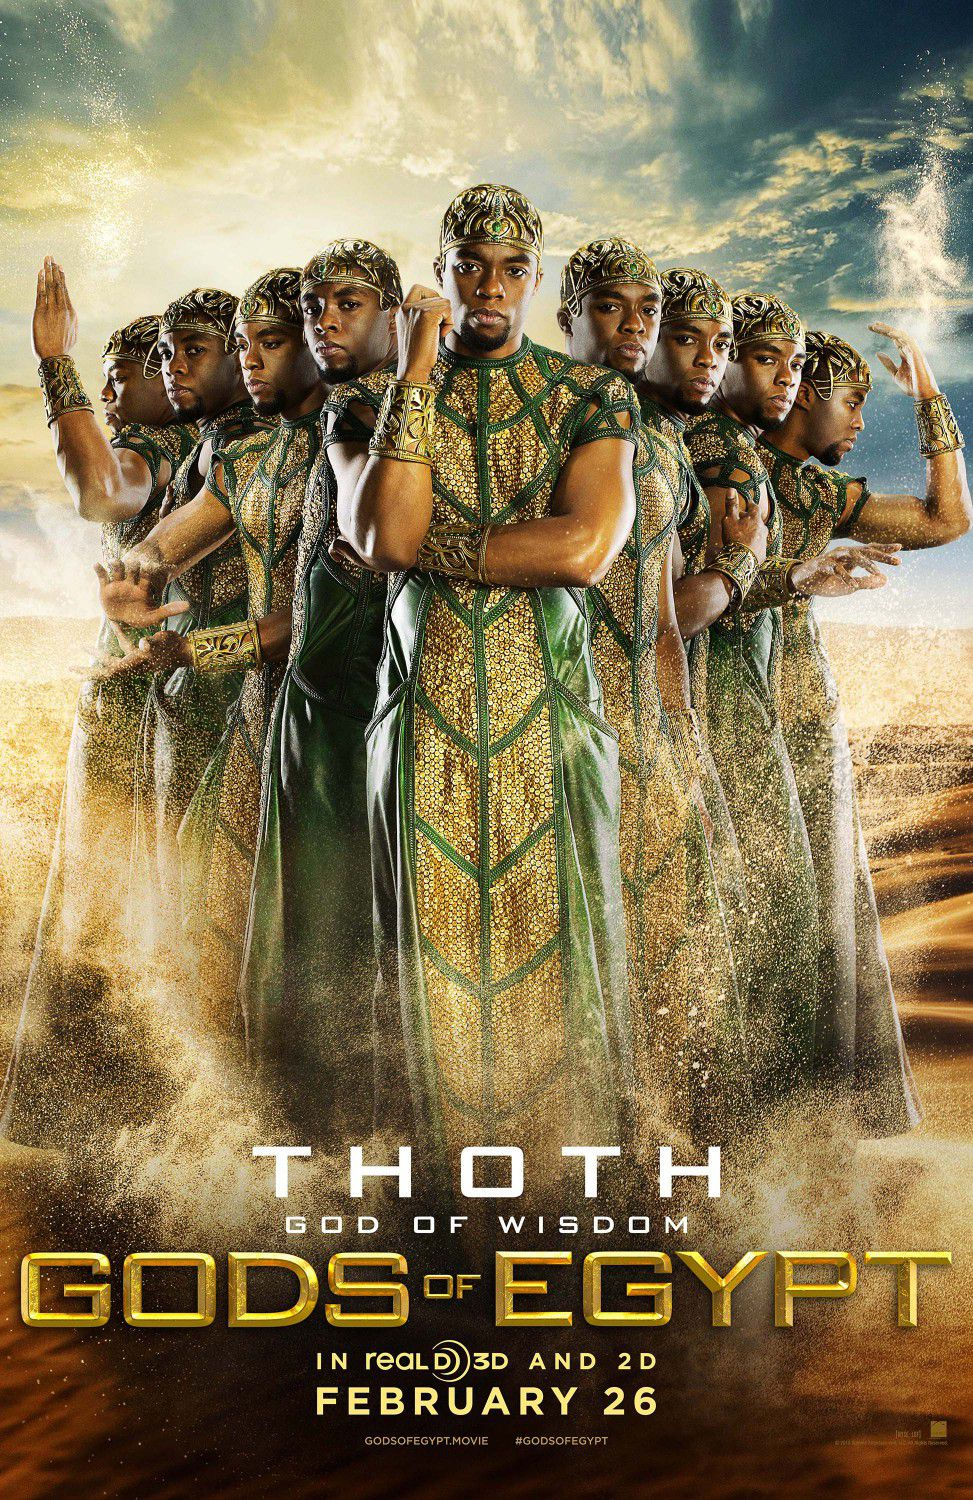 Chadwick Boseman as Thoth